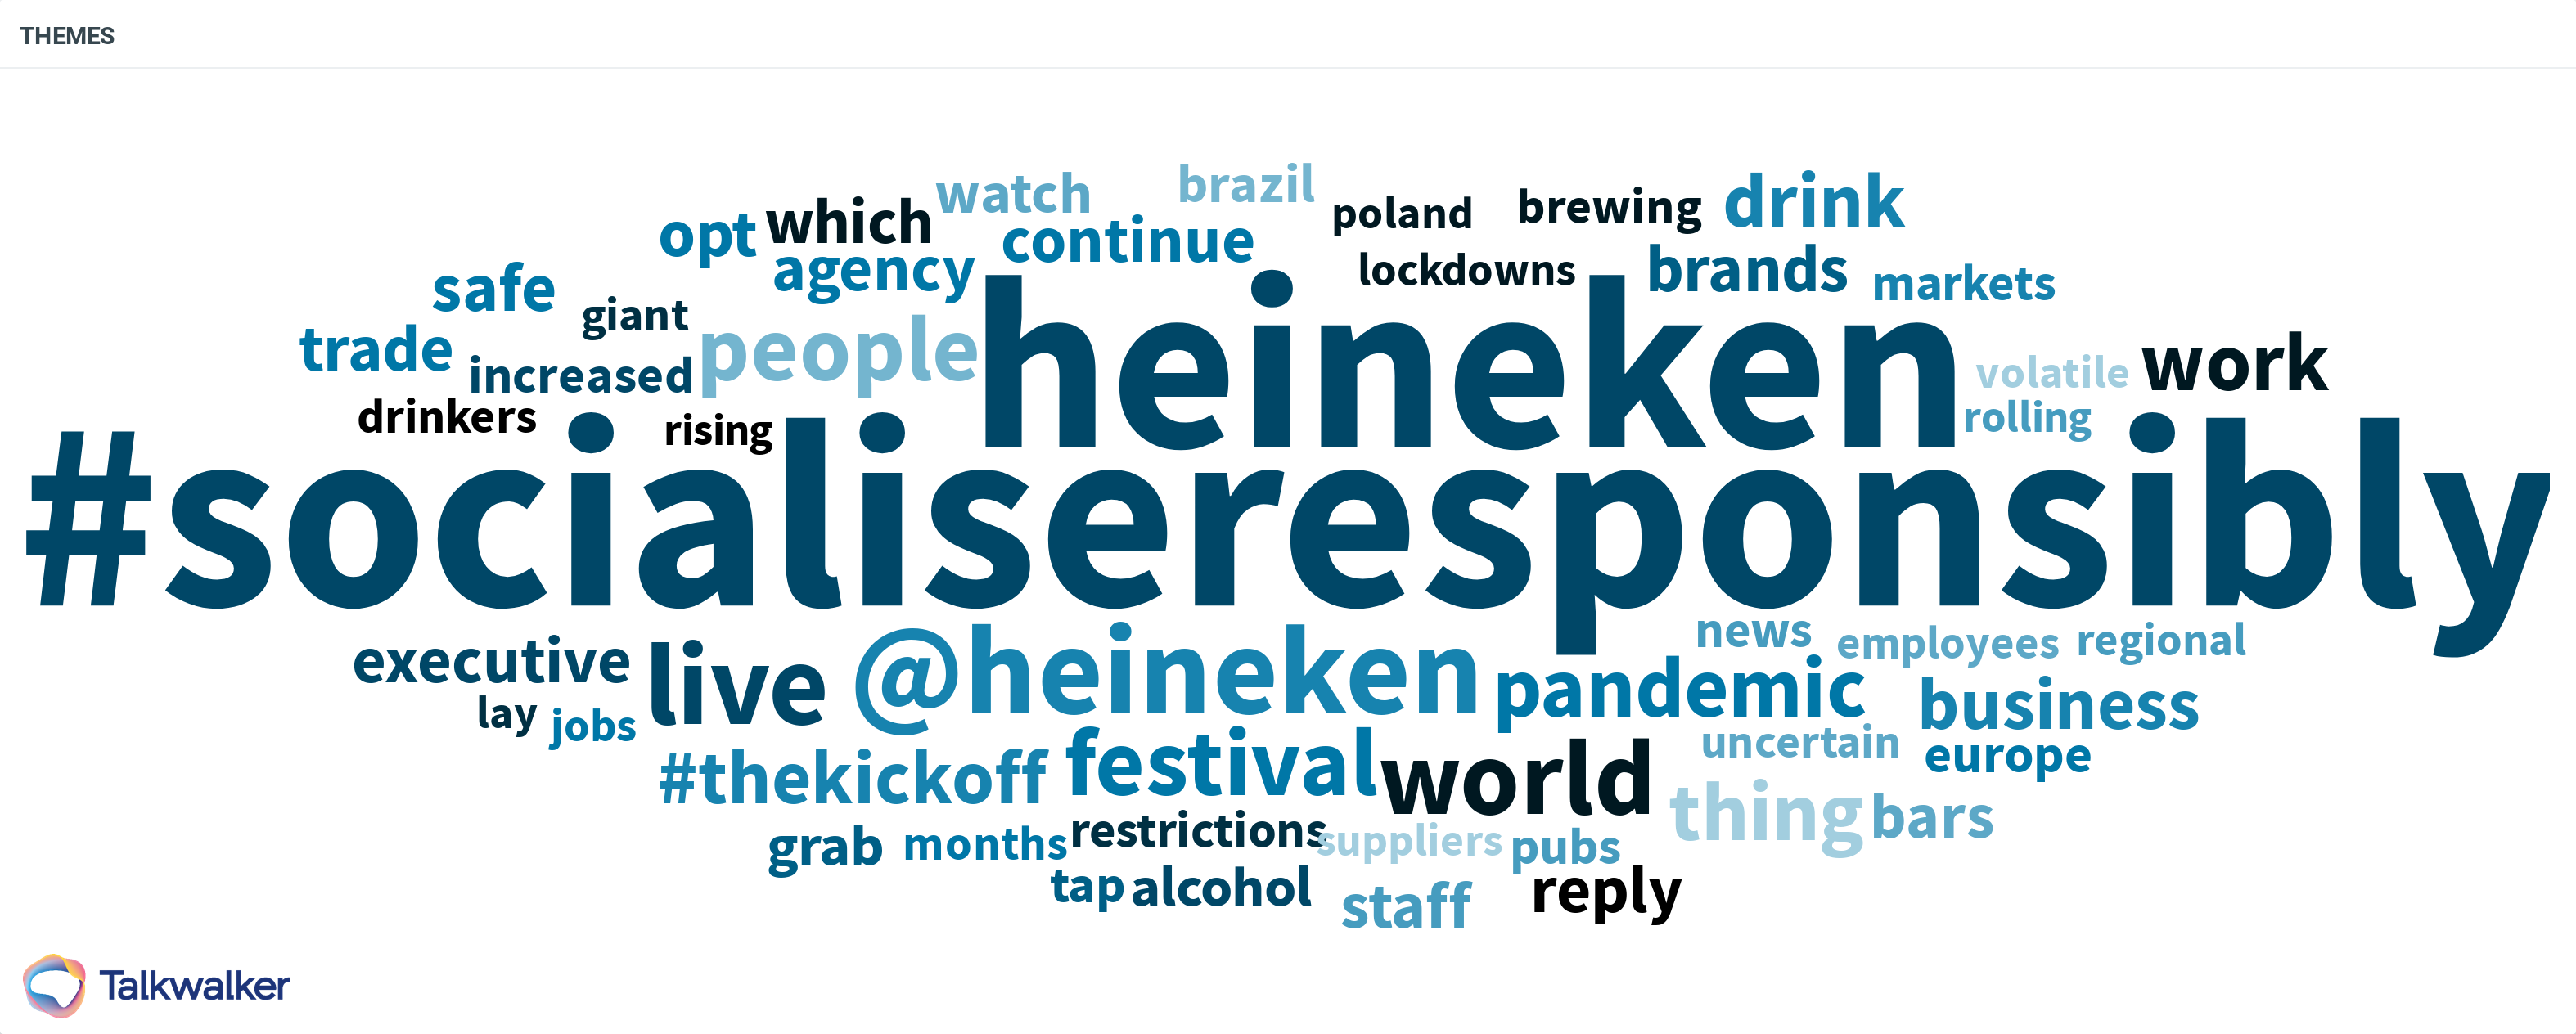 Heineken - socialise responsibly social media campaign on YouTube